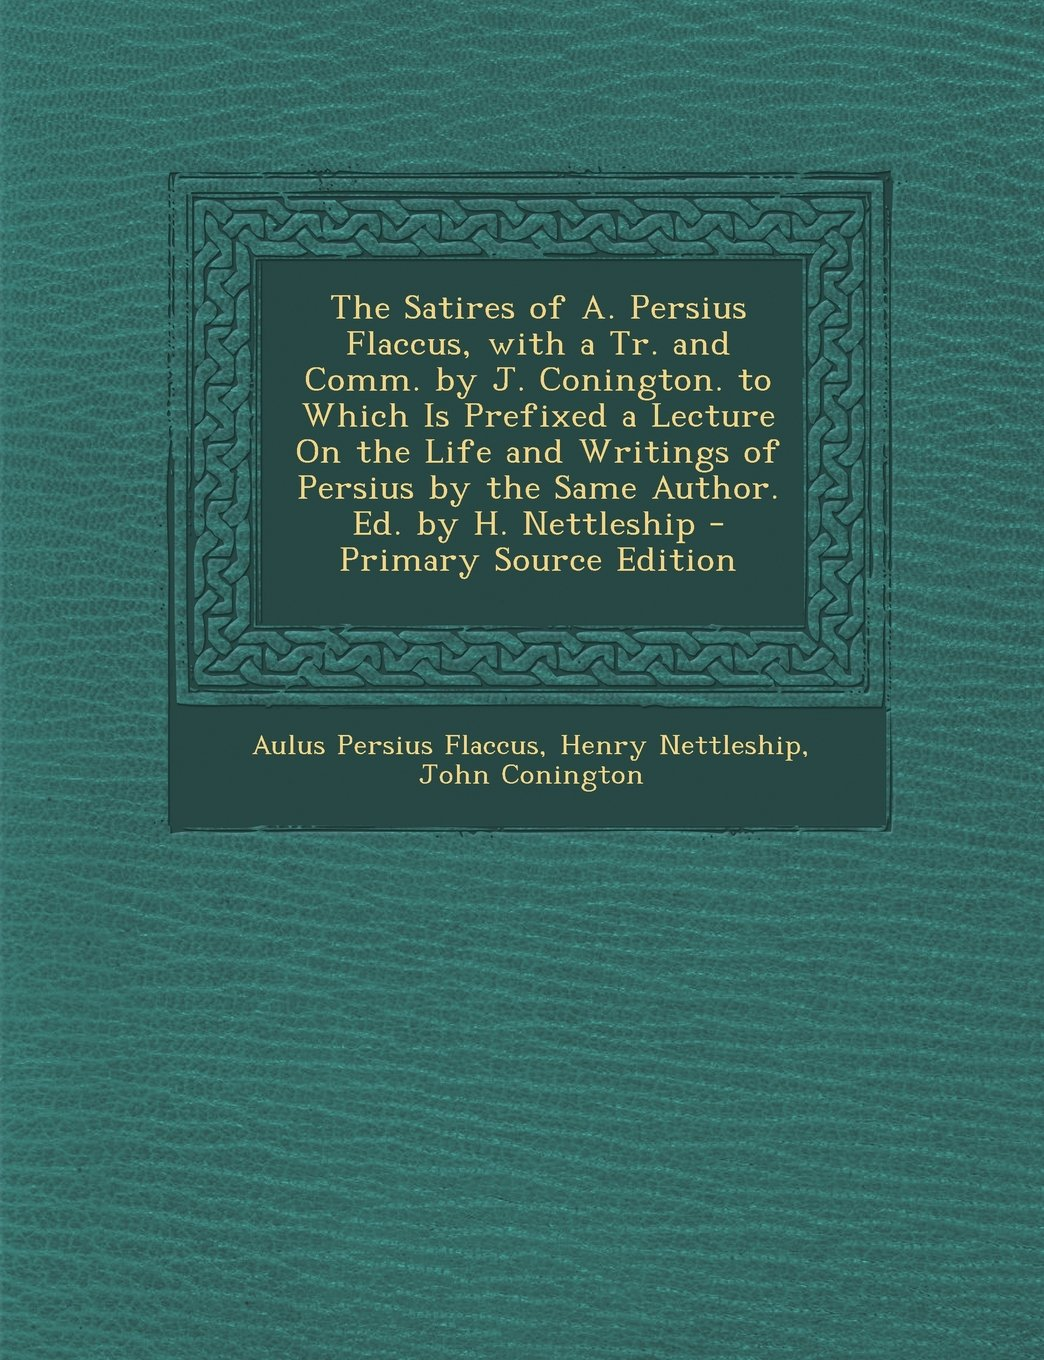 Read Online The Satires of A. Persius Flaccus, with a Tr. and Comm. by J. Conington. to Which Is Prefixed a Lecture On the Life and Writings of Persius by the Same Author. Ed. by H. Nettleship (Latin Edition) pdf